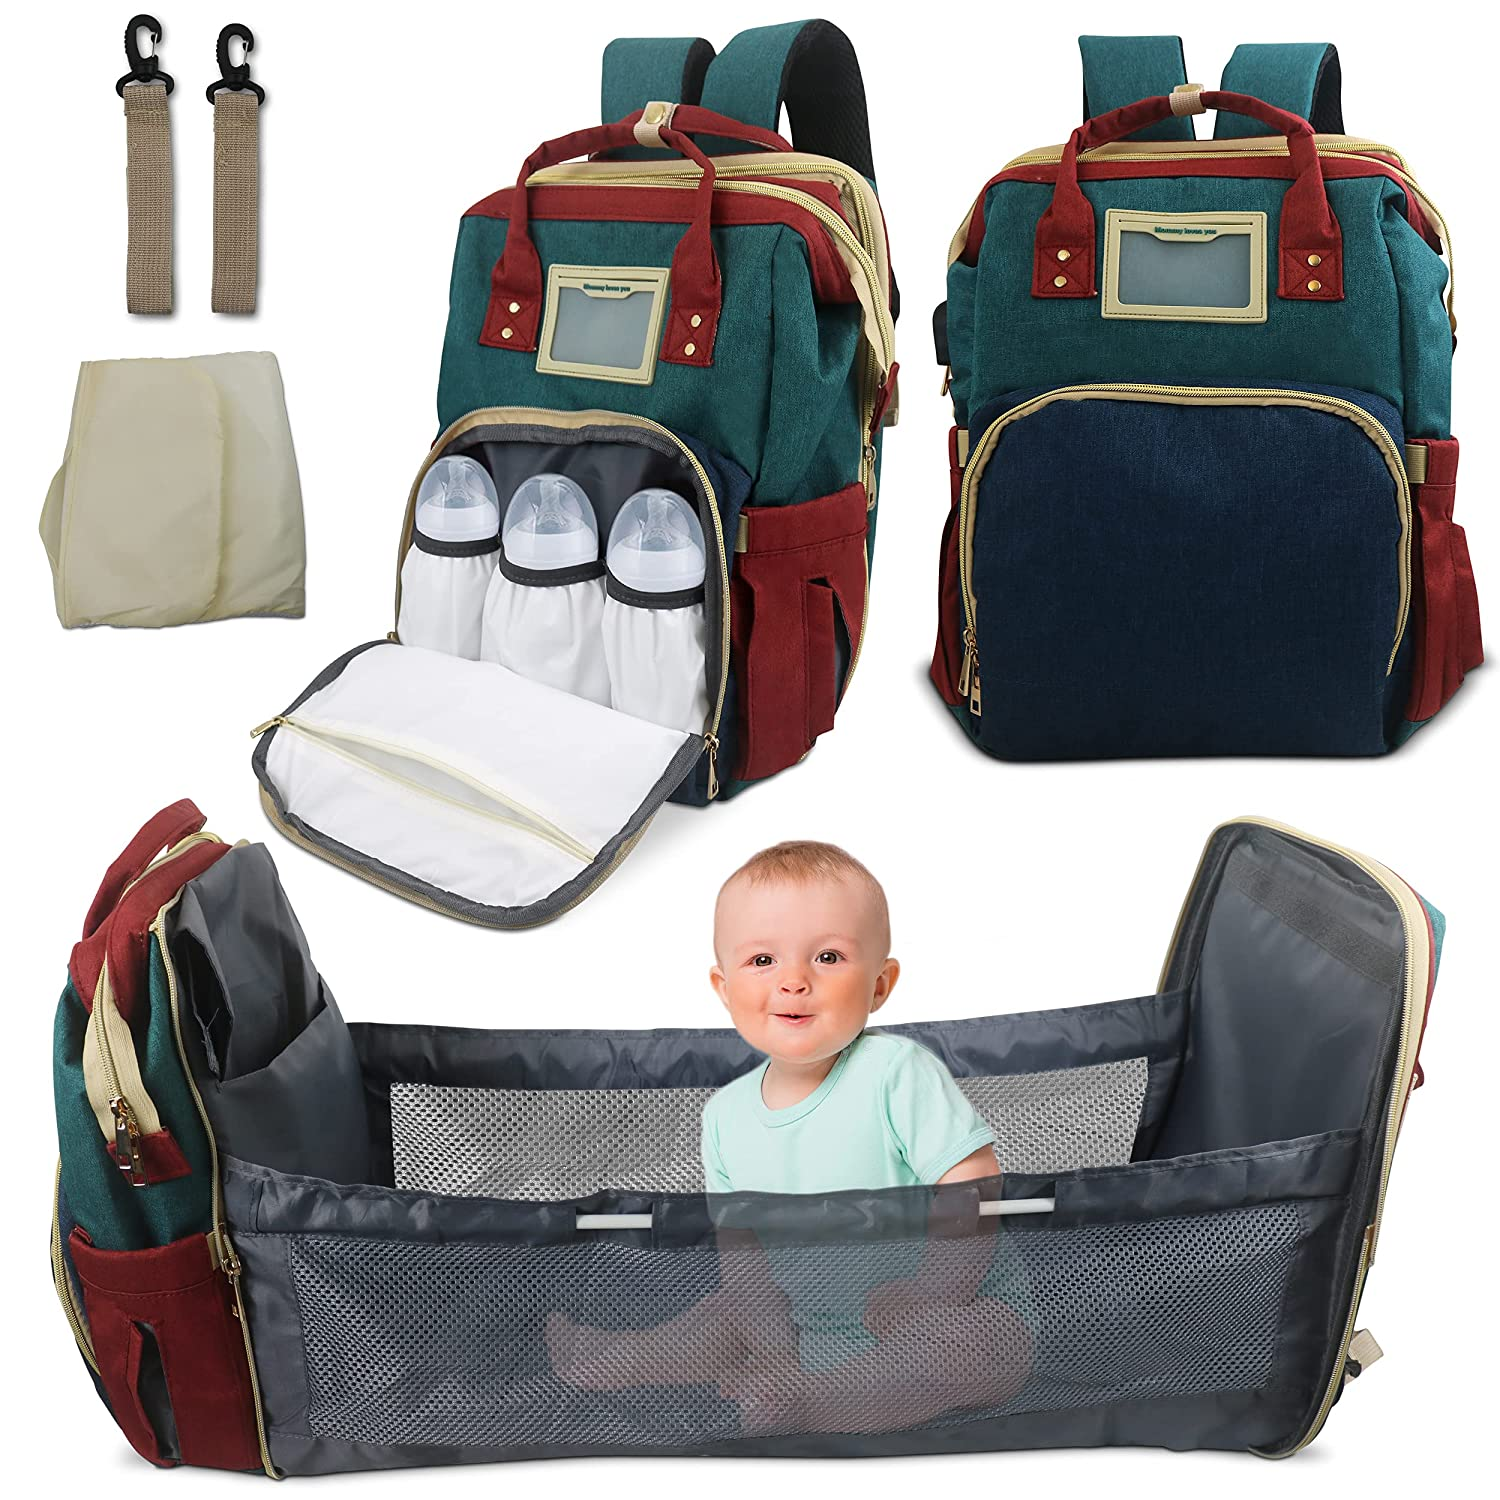 ADL Baby Diaper Bag Backpack with Charging Station,USB Charging Port, Multi Functional Large Capacity with Shade Cloth,Mattress,Card Bag